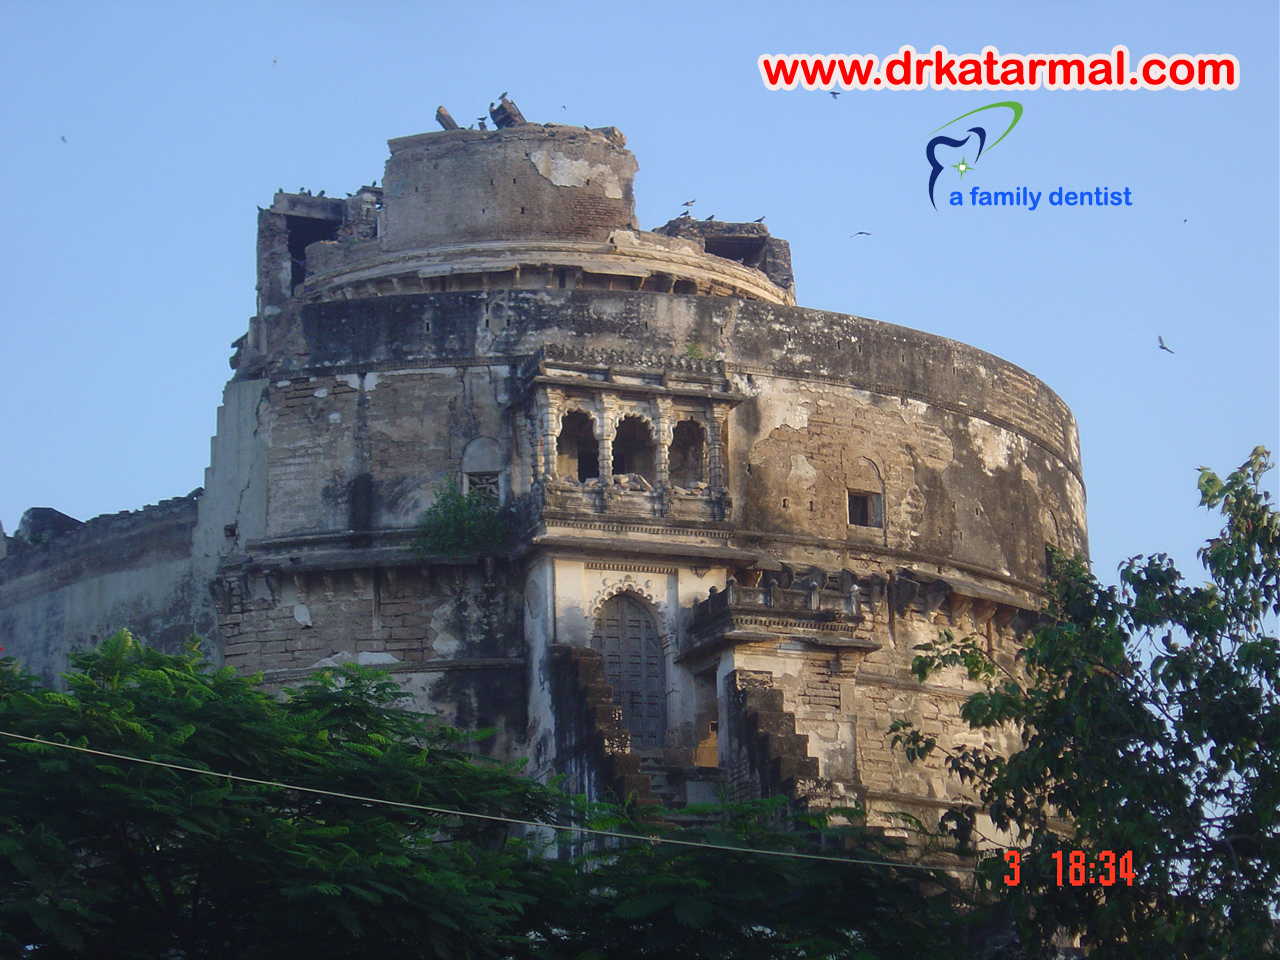 bhujio kotho is famous tourist point of jamnagar, gujarat.